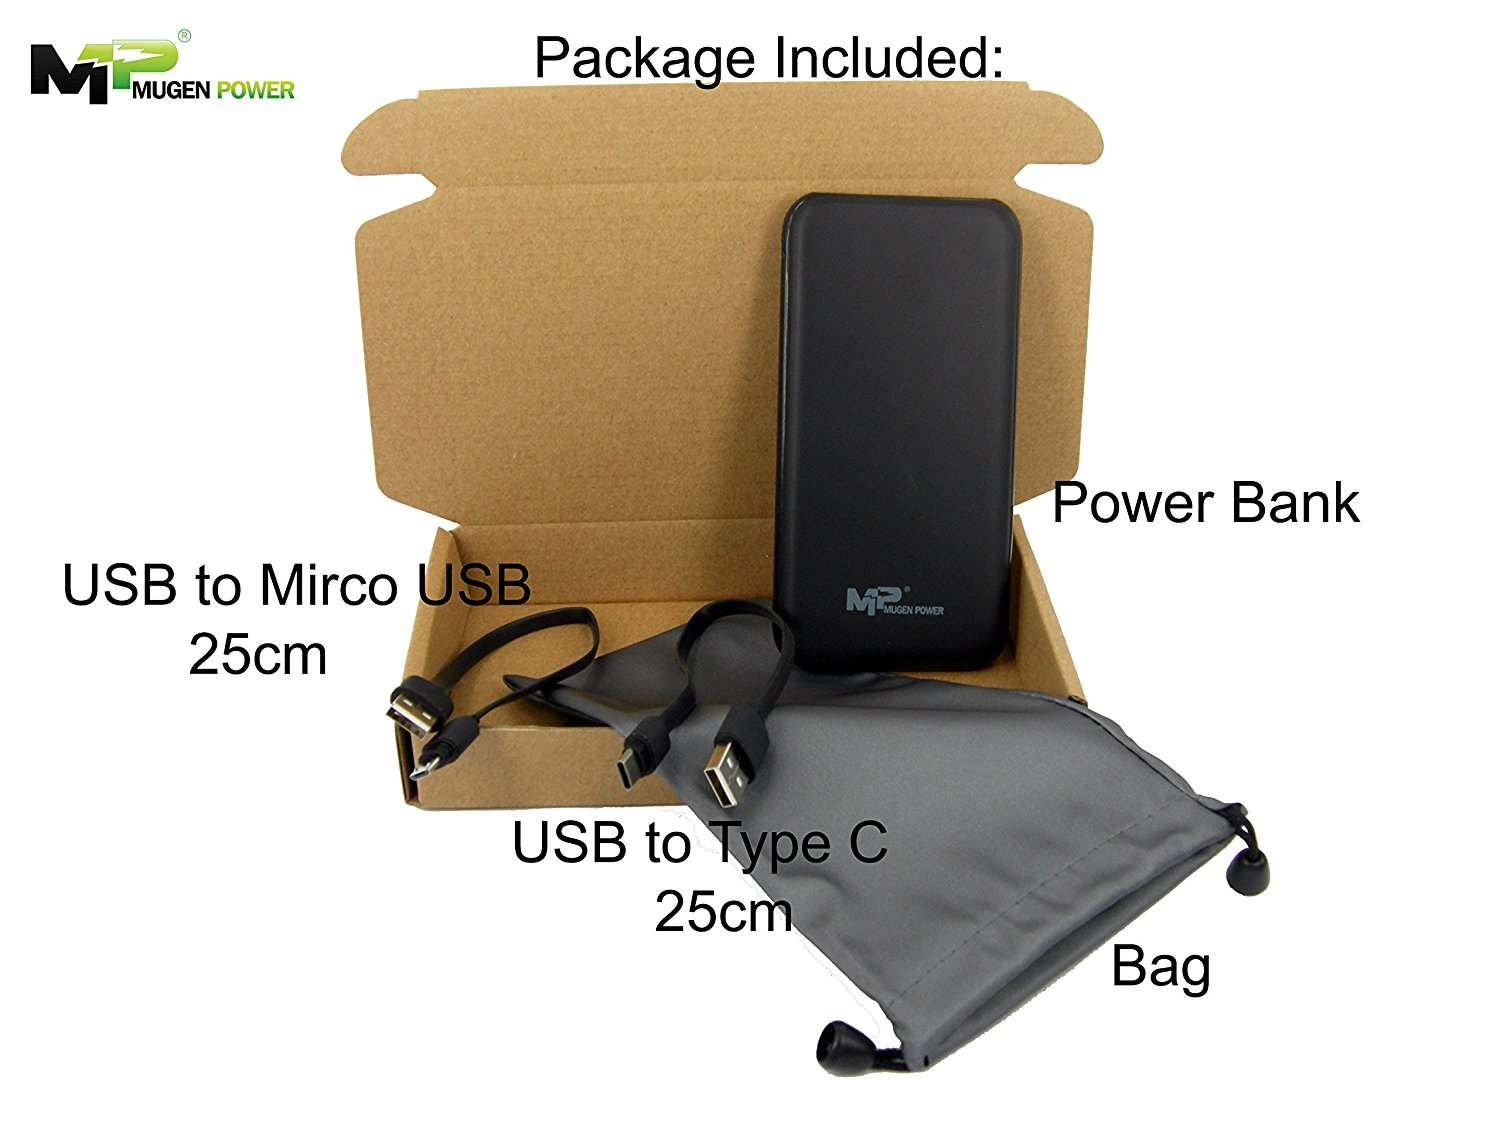 Mugen Power-Quick Charge 2.0-10000mAh 37Wh Safety Polymer Li-Ion Battery Portable Charger. (All-In-One Solution)(Black) for Samsung, Android, iPhone, SmartPhone, iPads, iPods & Tablets